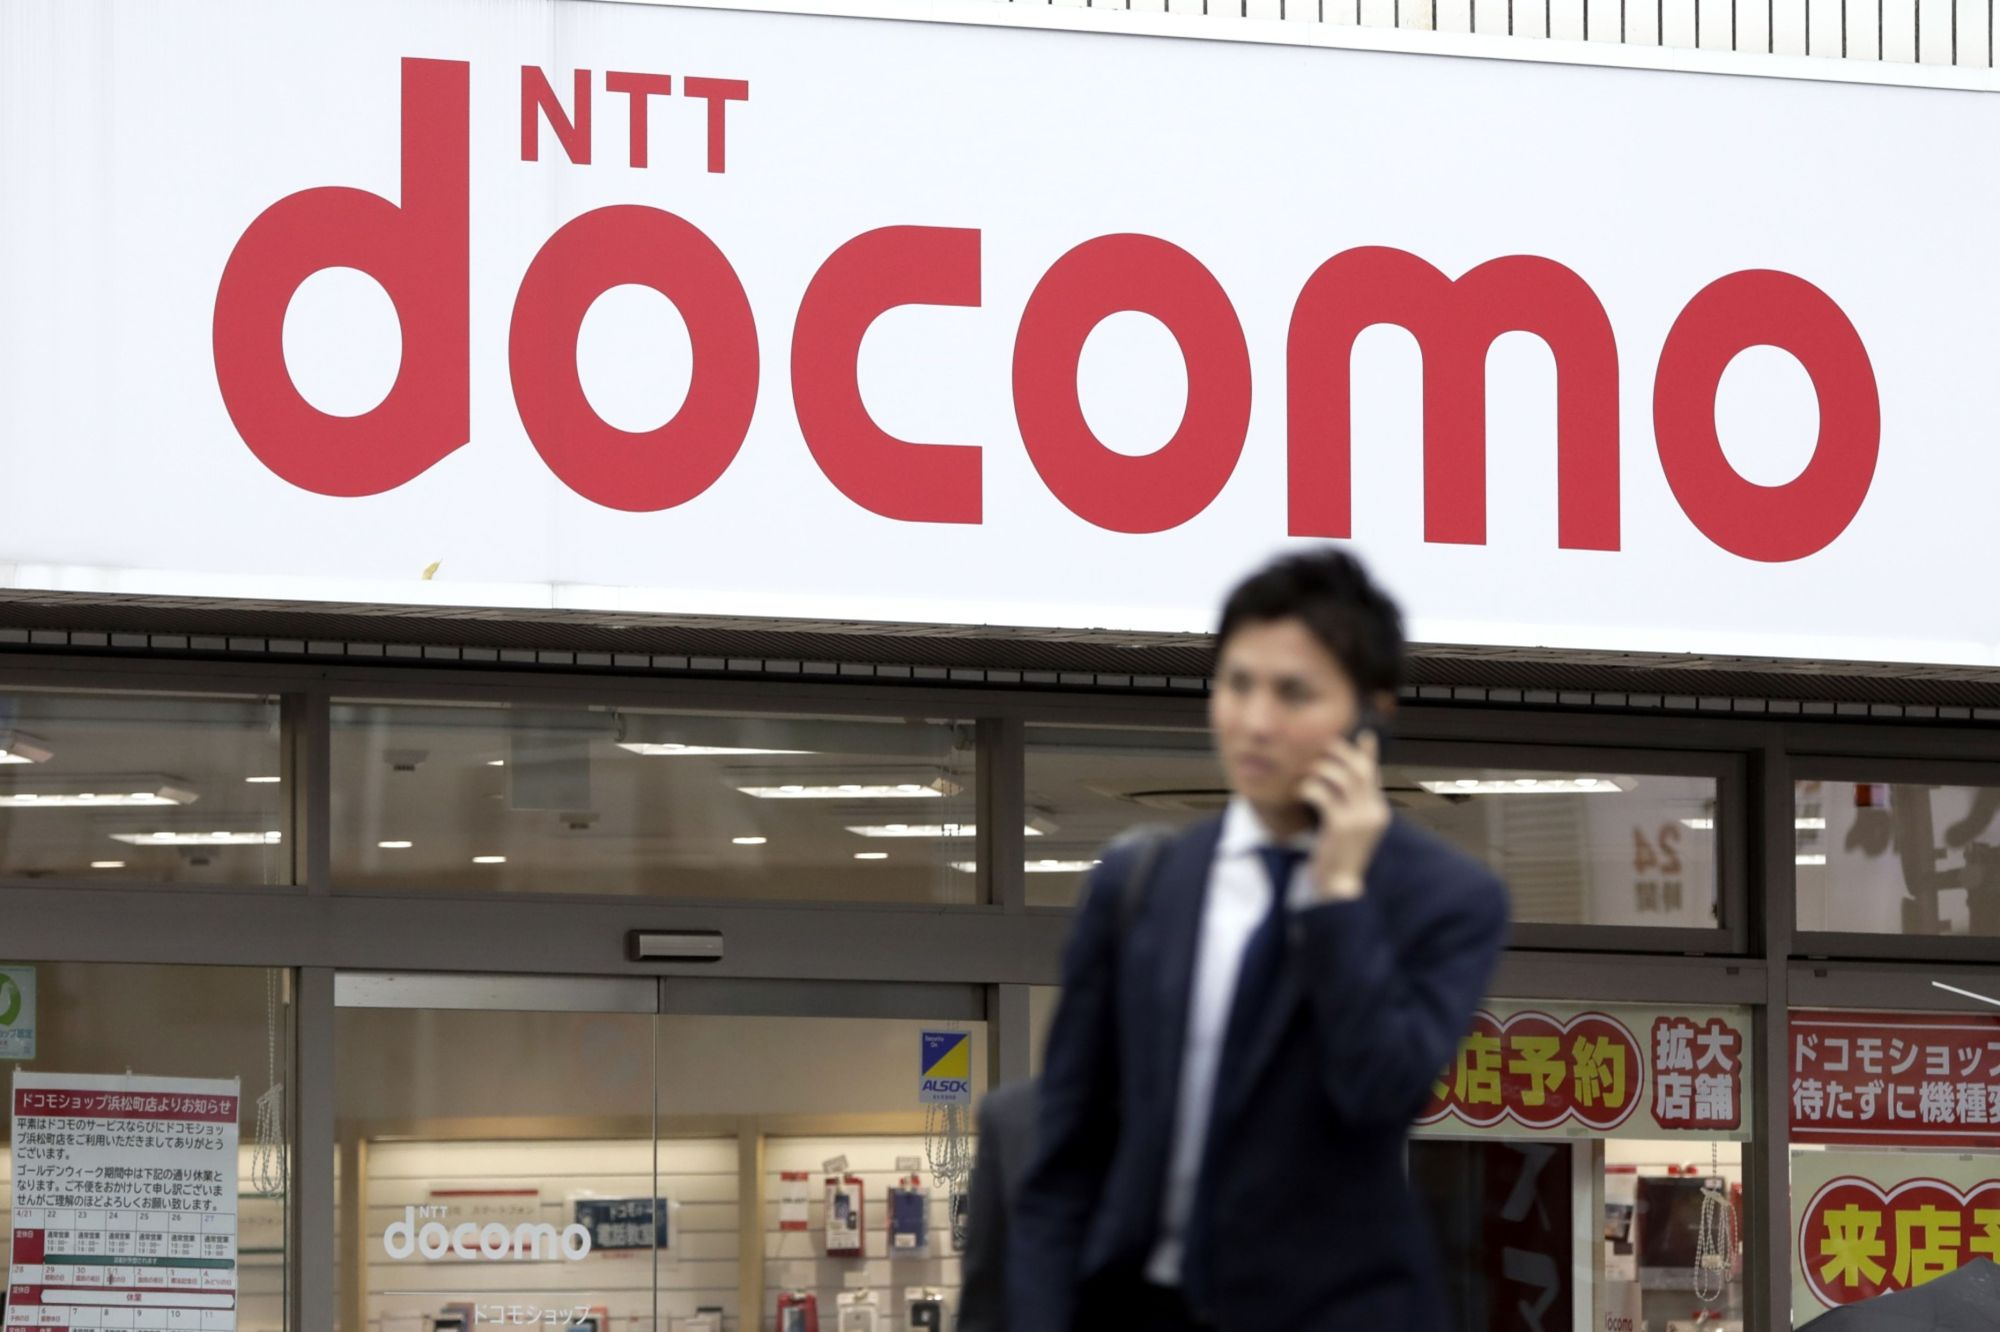 NTT Group is promoting telecommuting and off-peak commuting for its employees due to fears over the coronavirus. | BLOOMBERG